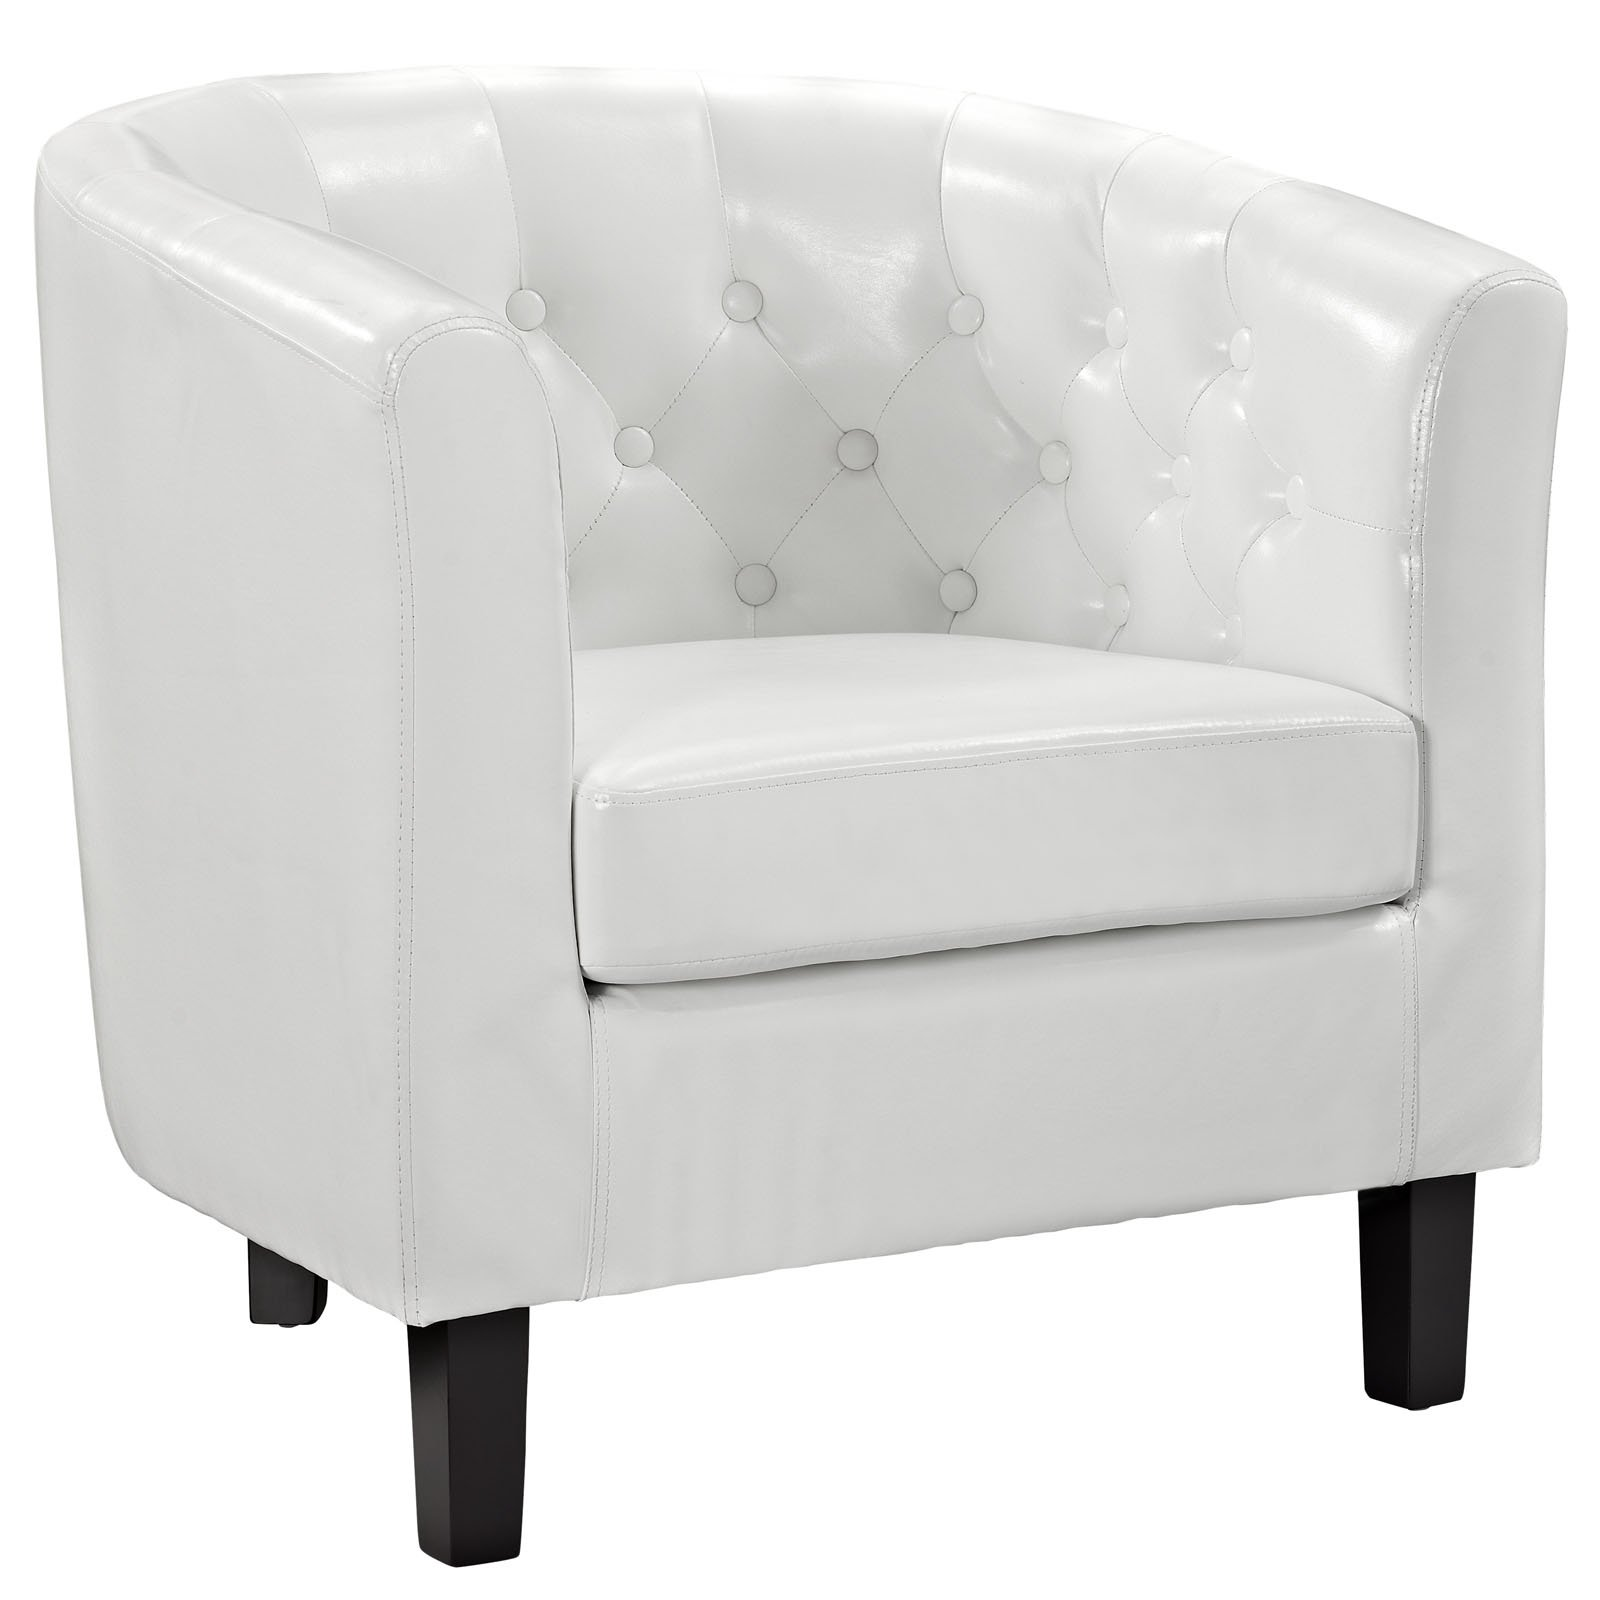 Modway Prospect Upholstered Contemporary Modern Armchair In White Faux Leather